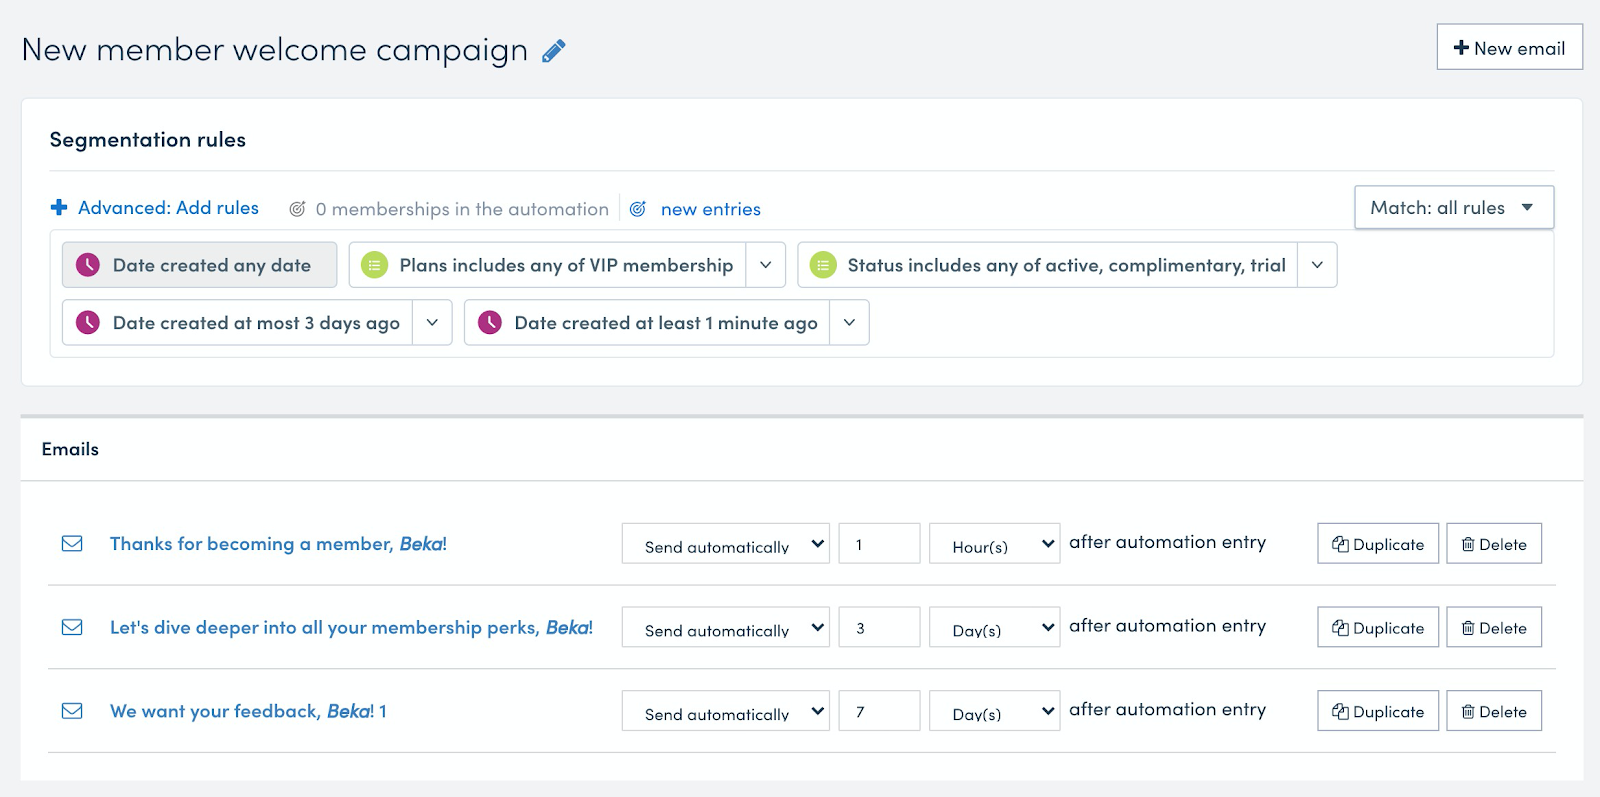 Set up a three-email series for new members using segmentation rules.